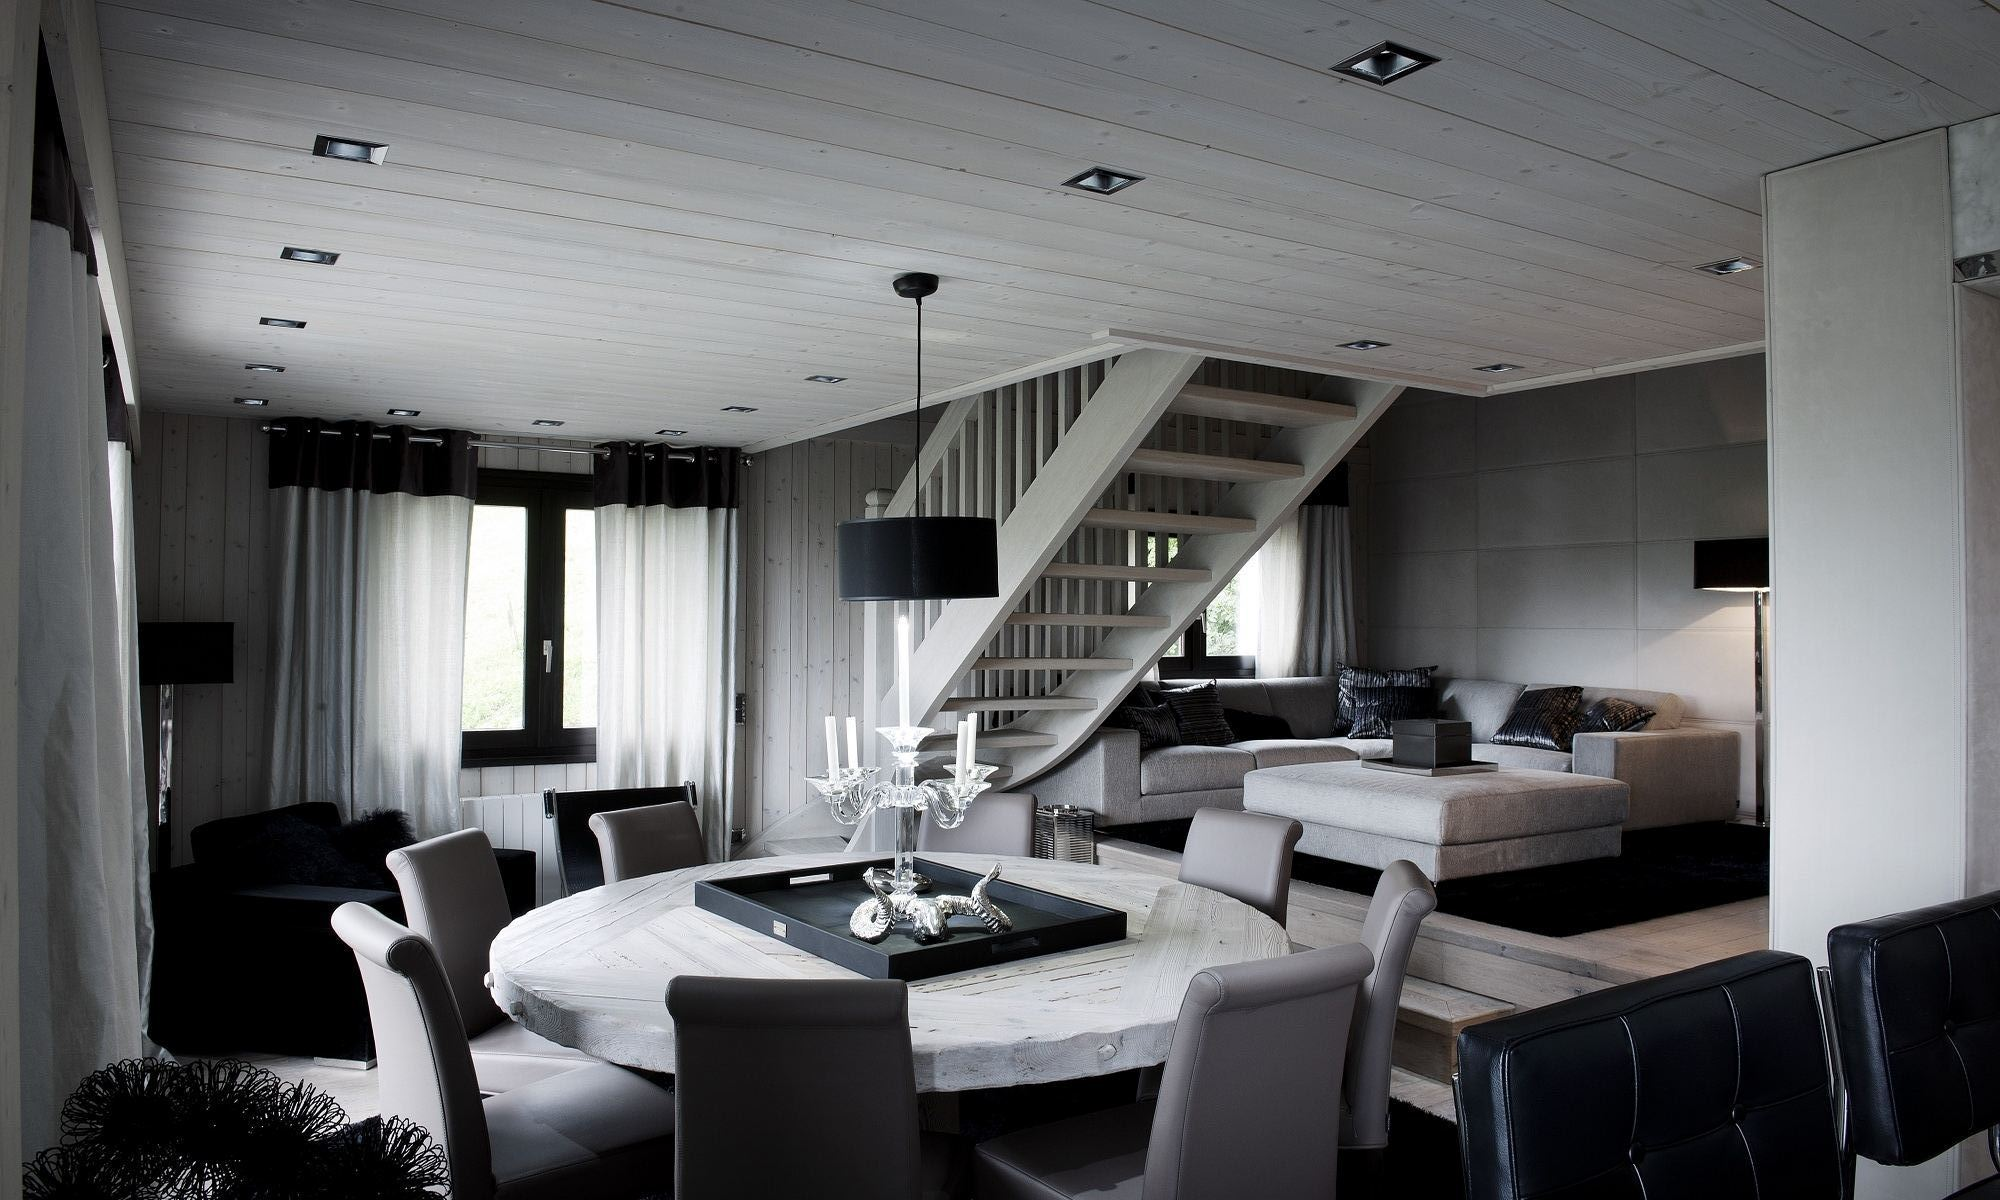 Single Family Home for Sale at Megève Jaillet Chalet Flocon Megeve, Rhone-Alpes 74120 France